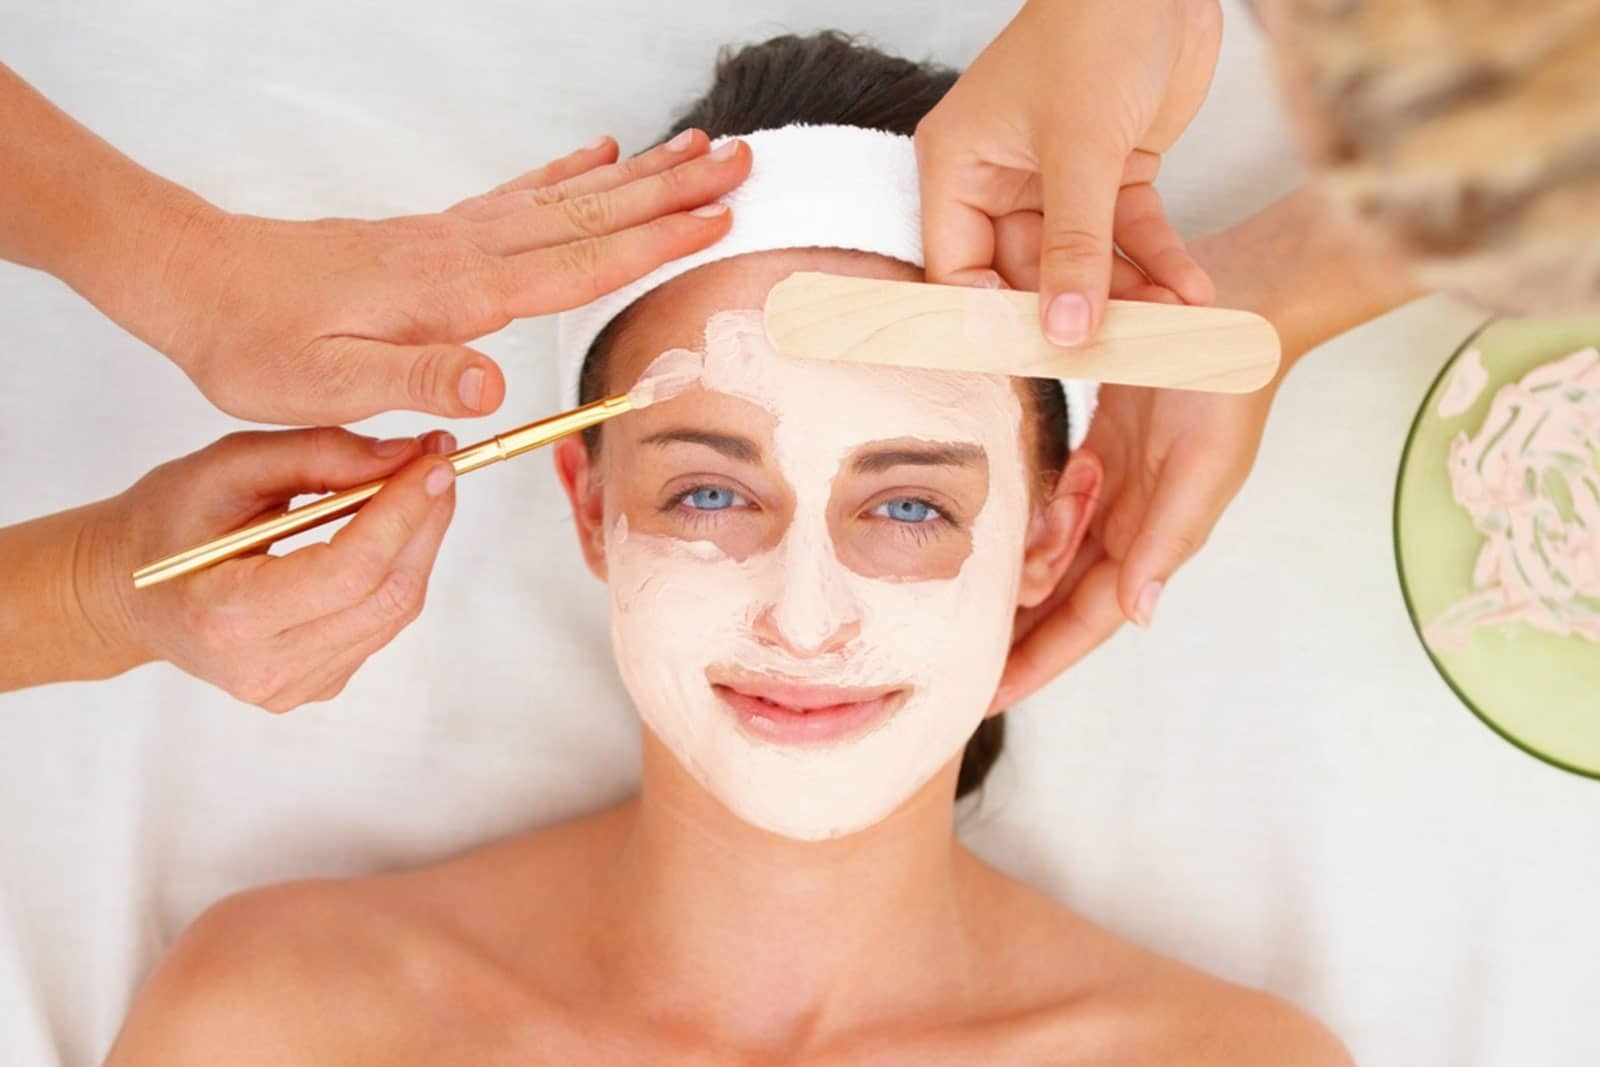 Relaxed girl receiving a facial